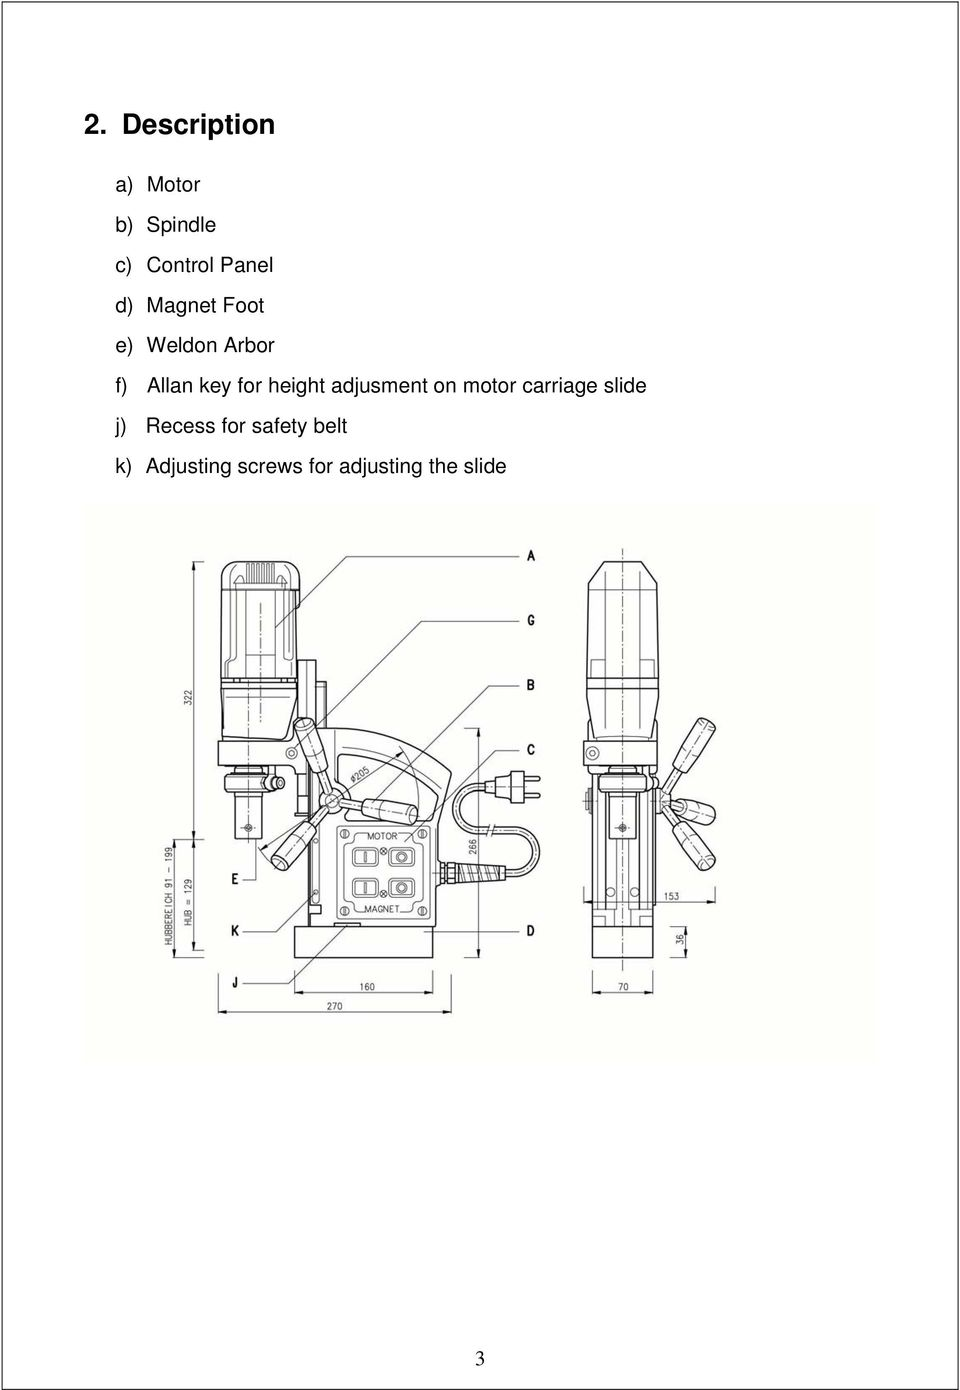 Alfra Rotabest Piccolo 32 50 Weldon Metal Core Drilling Machine Magnetic Chuck Wiring Diagram Height Adjusment On Motor Carriage Slide J Recess